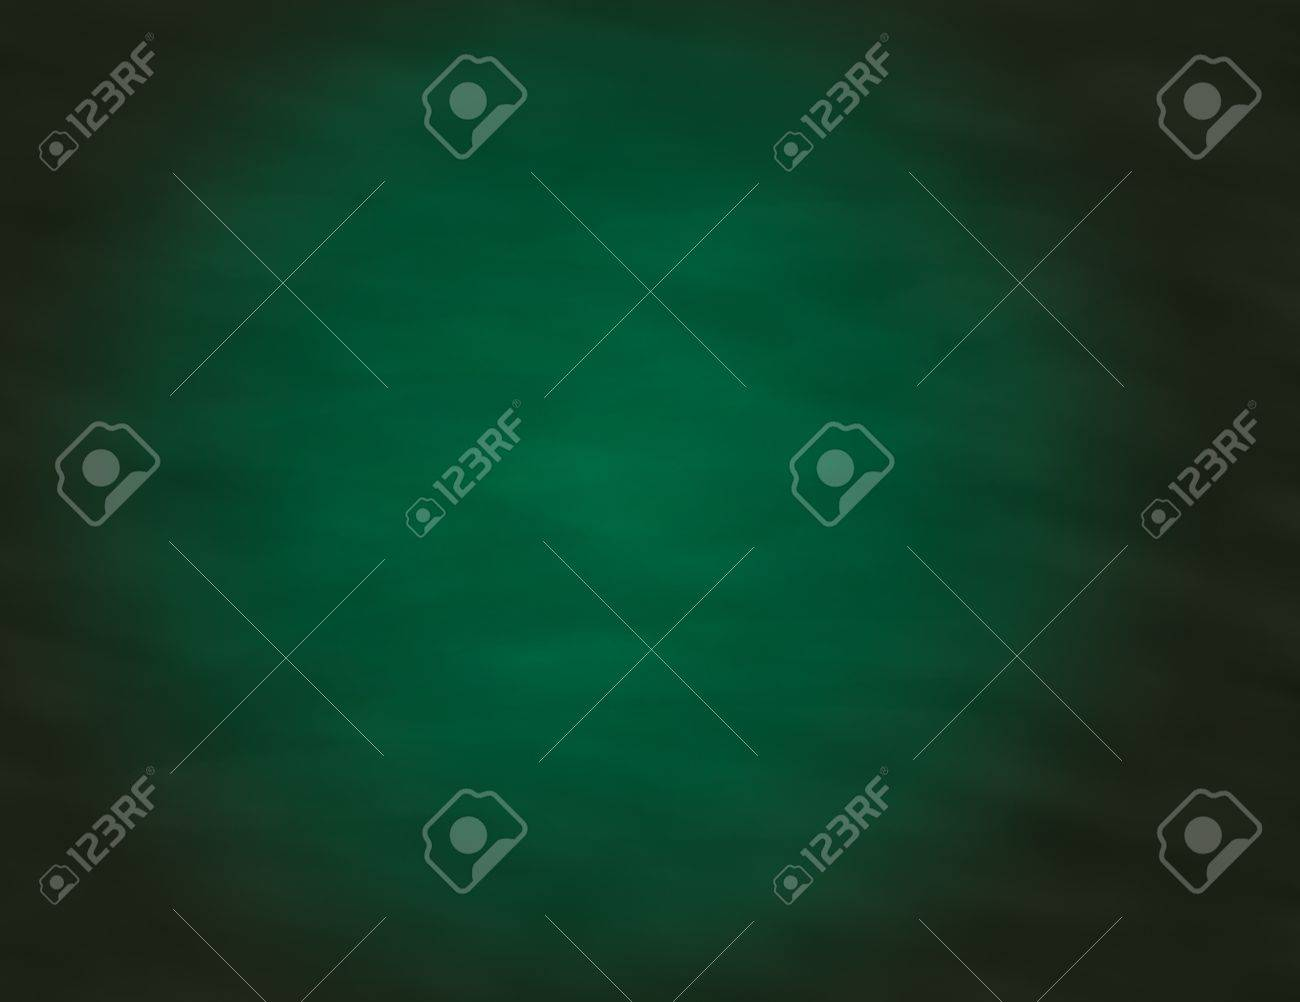 Grunge Seamless Green Chalkboard Background High Resolution Stock Photo